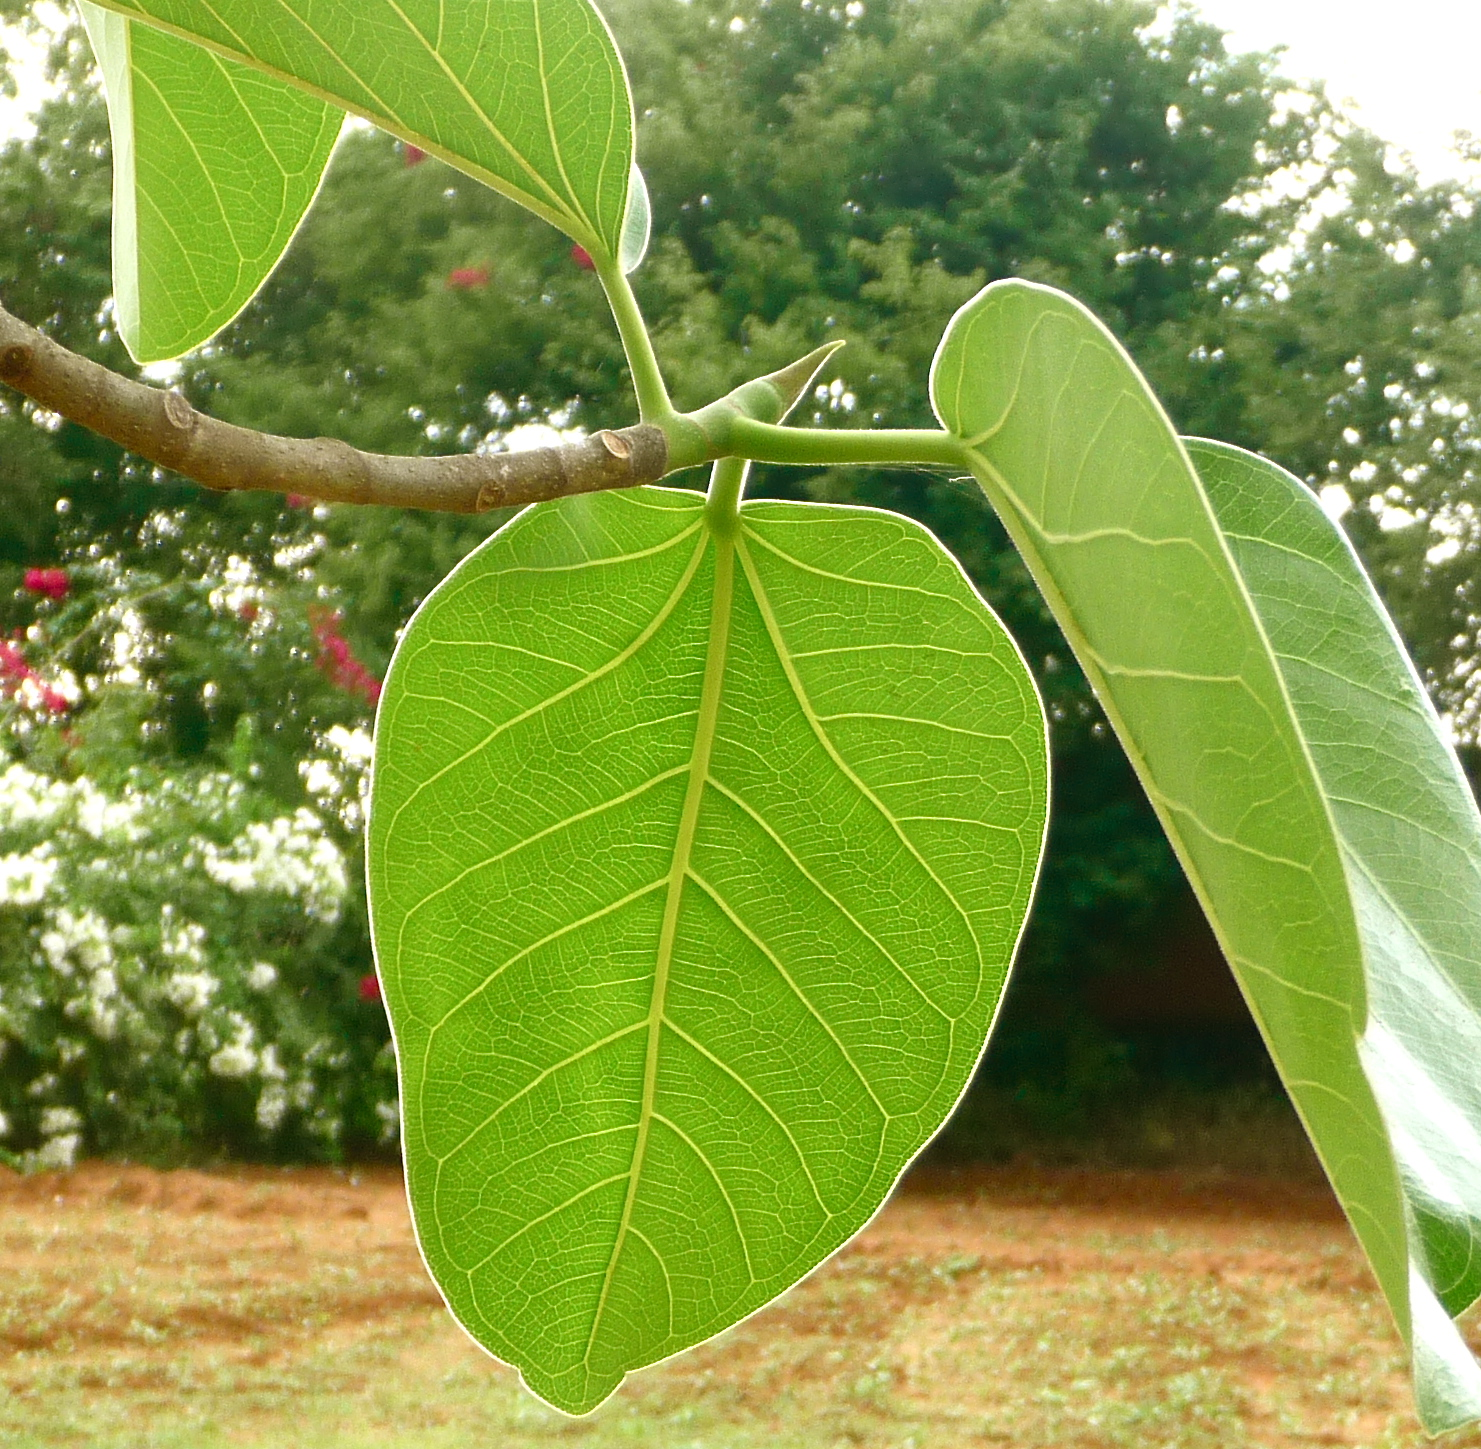 banyan tree leaf - photo #1